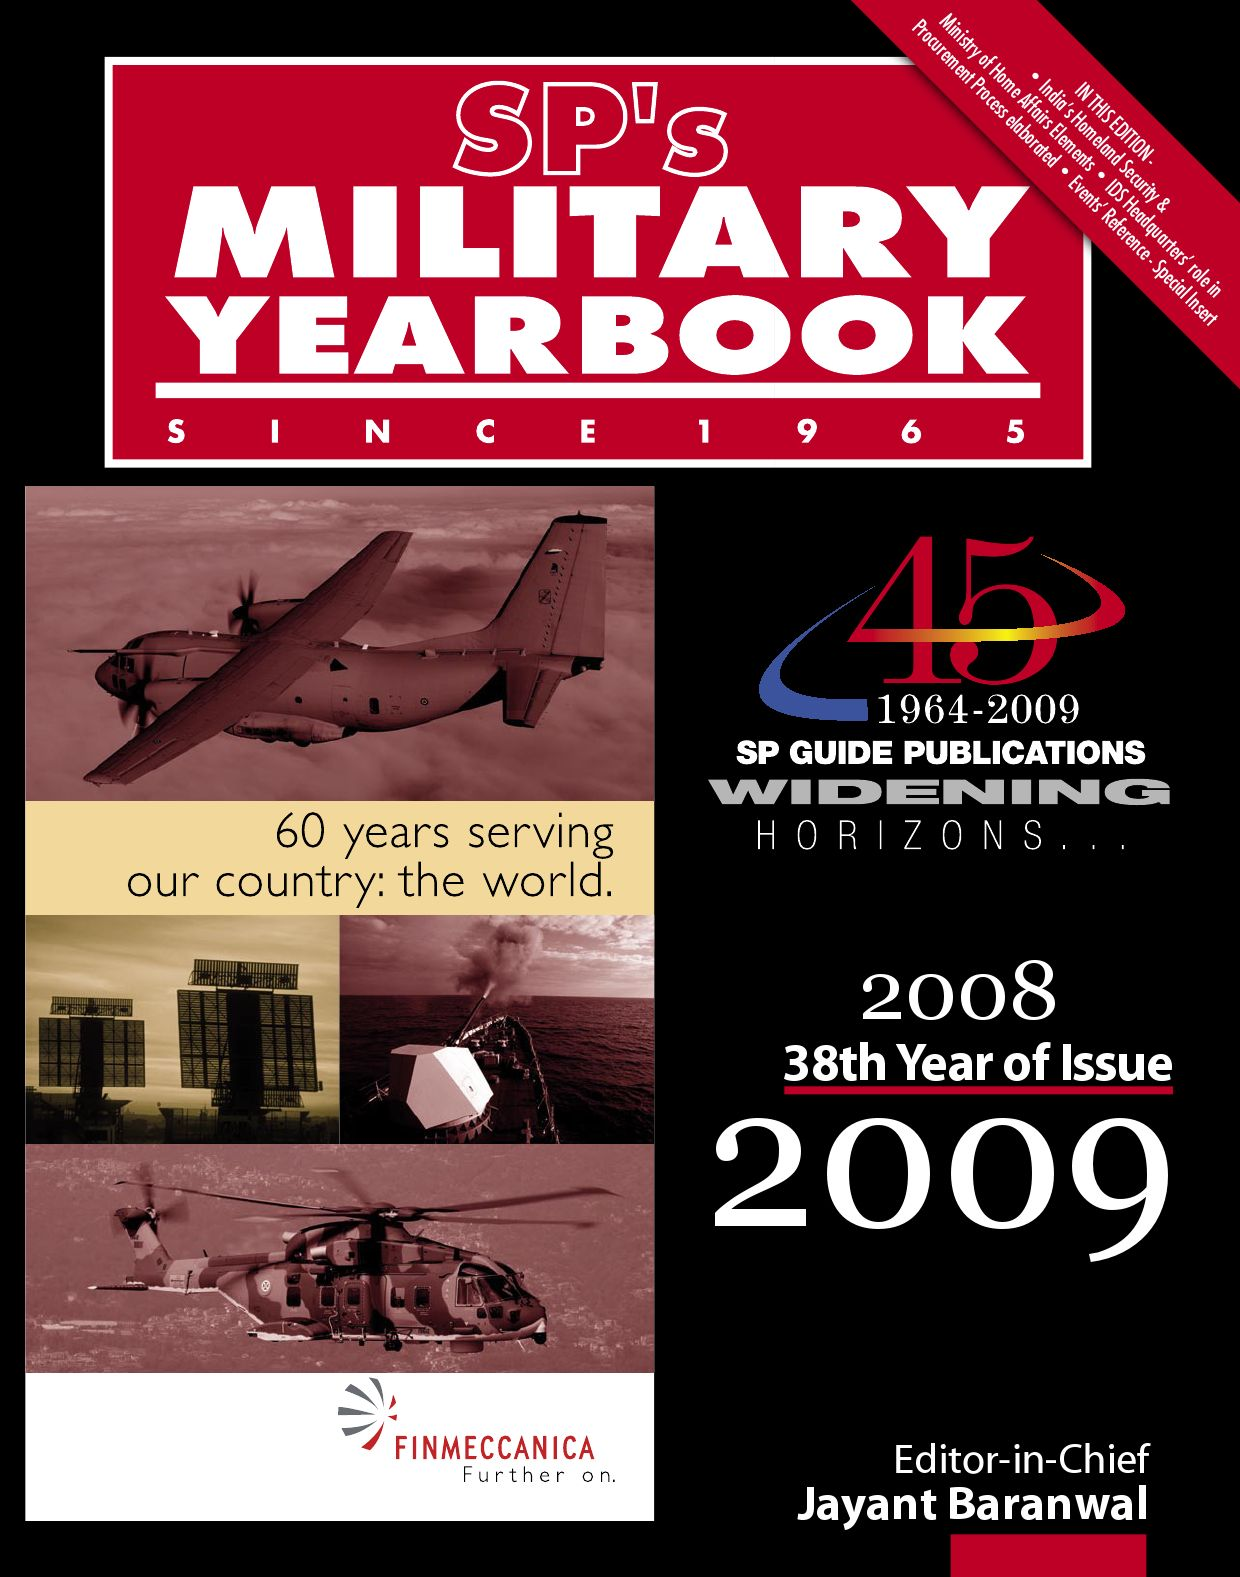 Sps Military Yearbook 2008 2009 By Sp Guide Publications Pvt Ltd Changhong Ac Low Watt 1 Pk Csc 09qa Indoor Outdoor Only Issuu